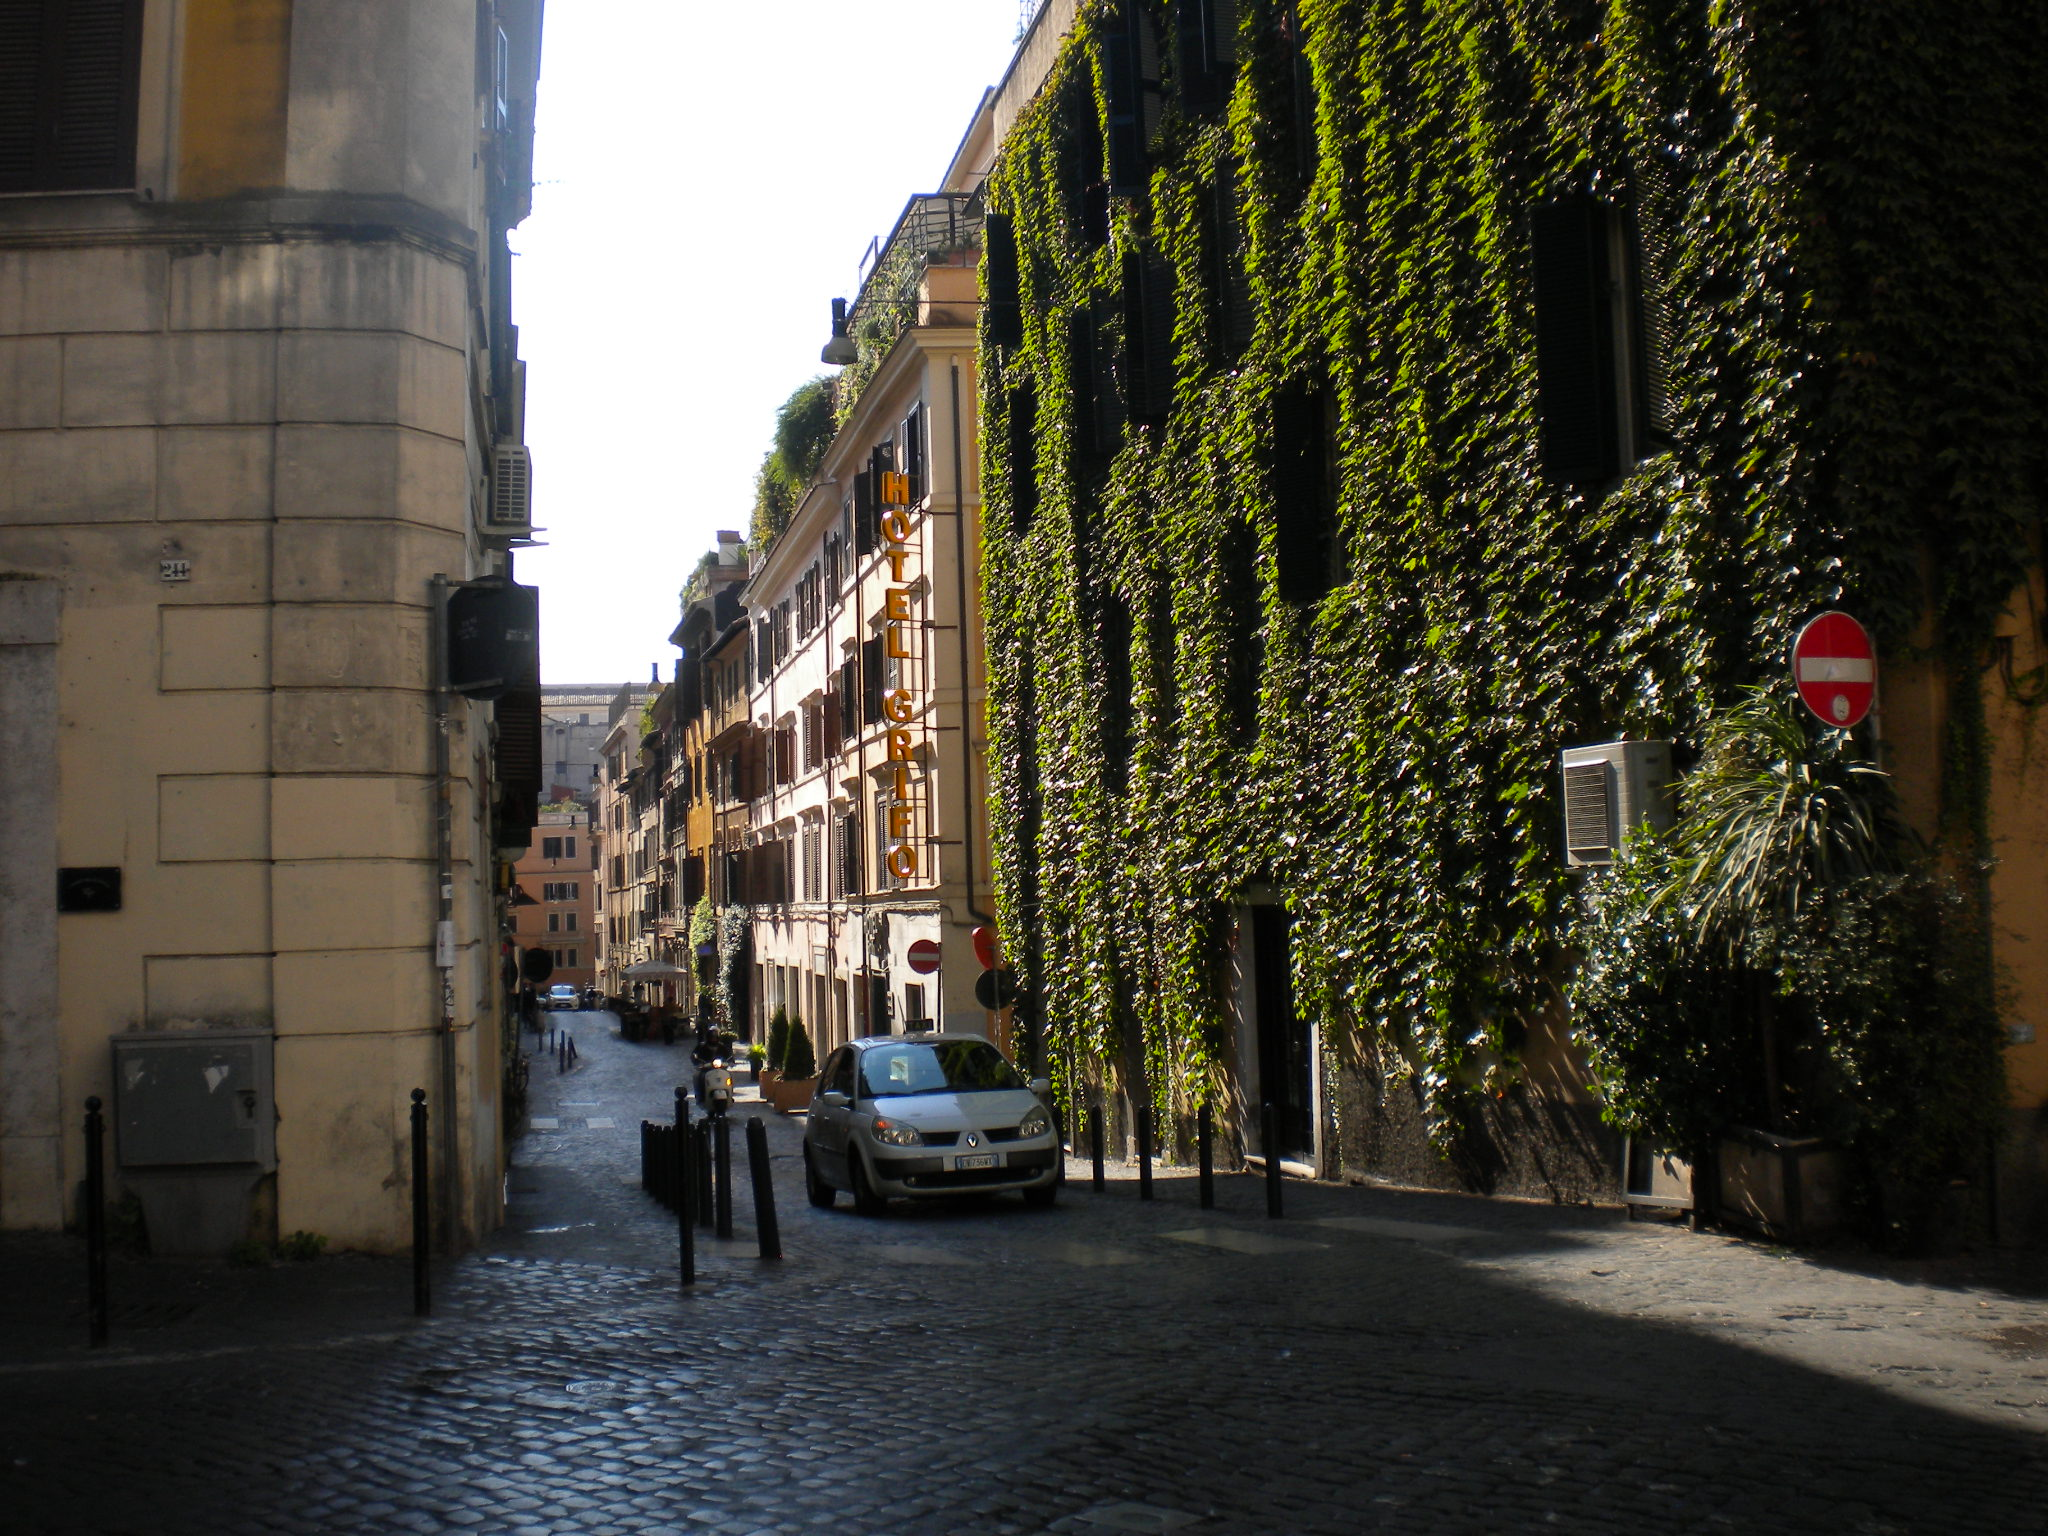 ivy on building along Italian street